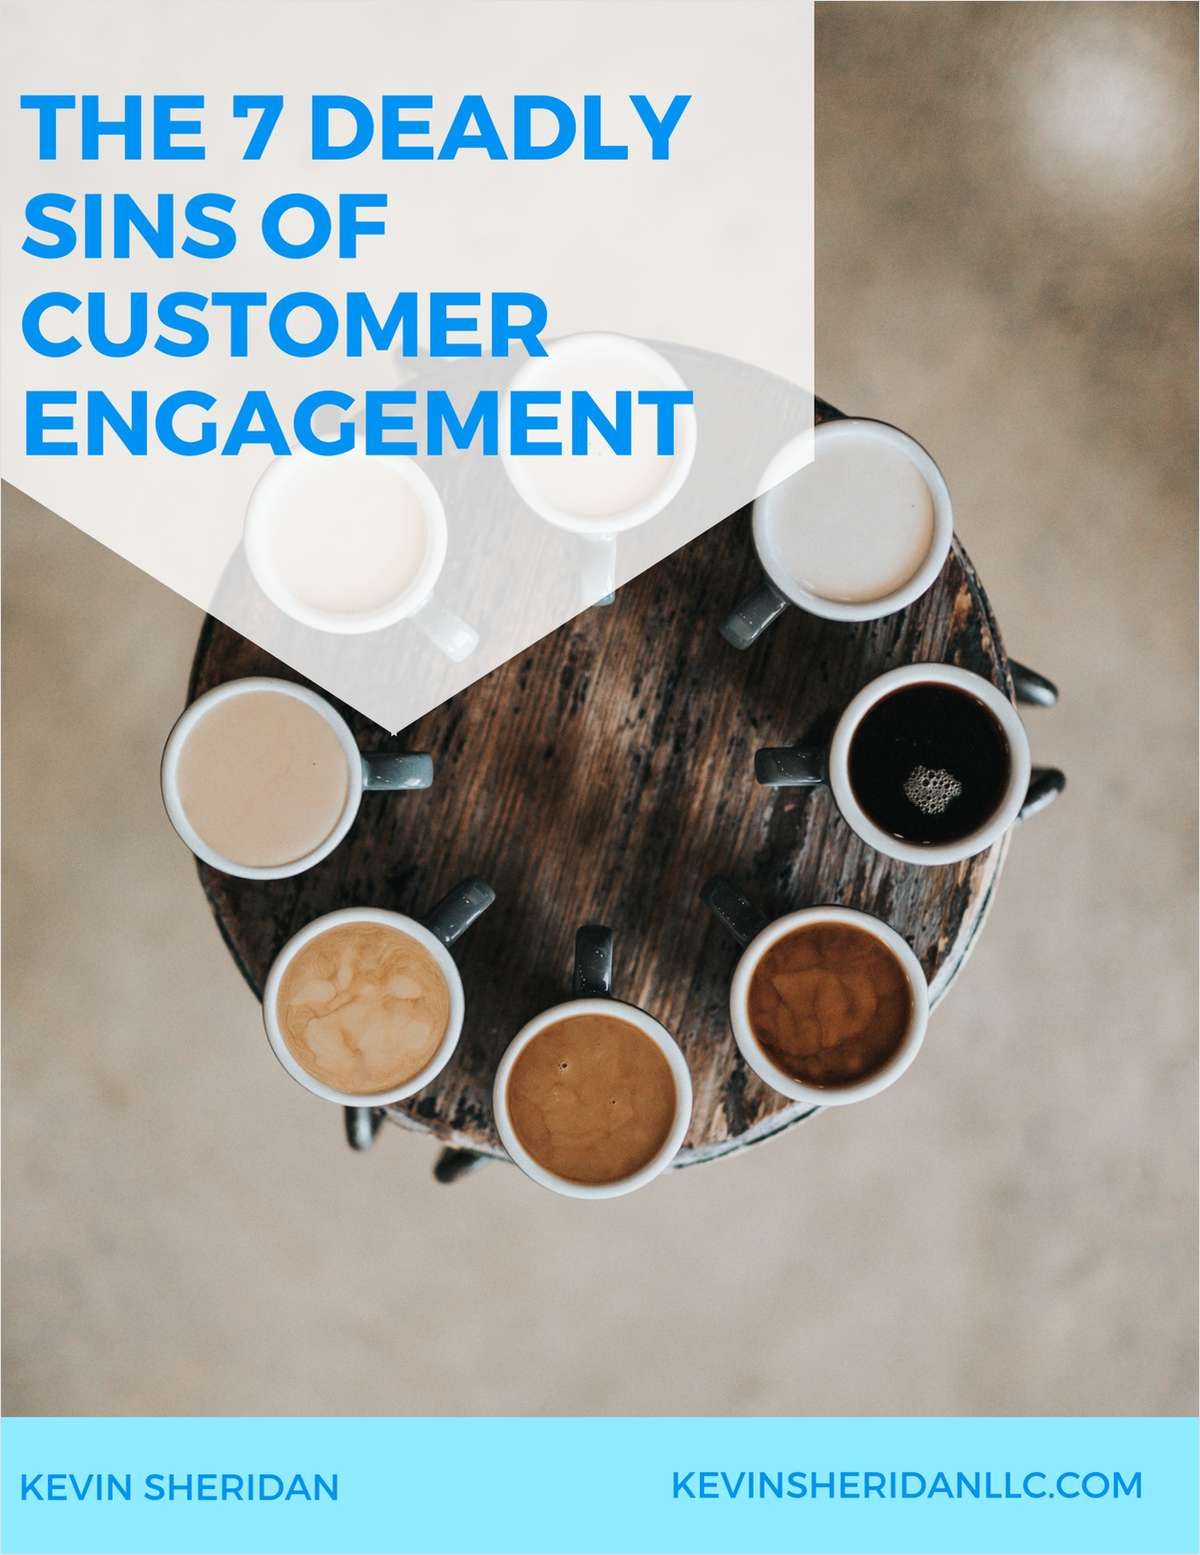 The 7 Deadly Sins of Customer Engagement